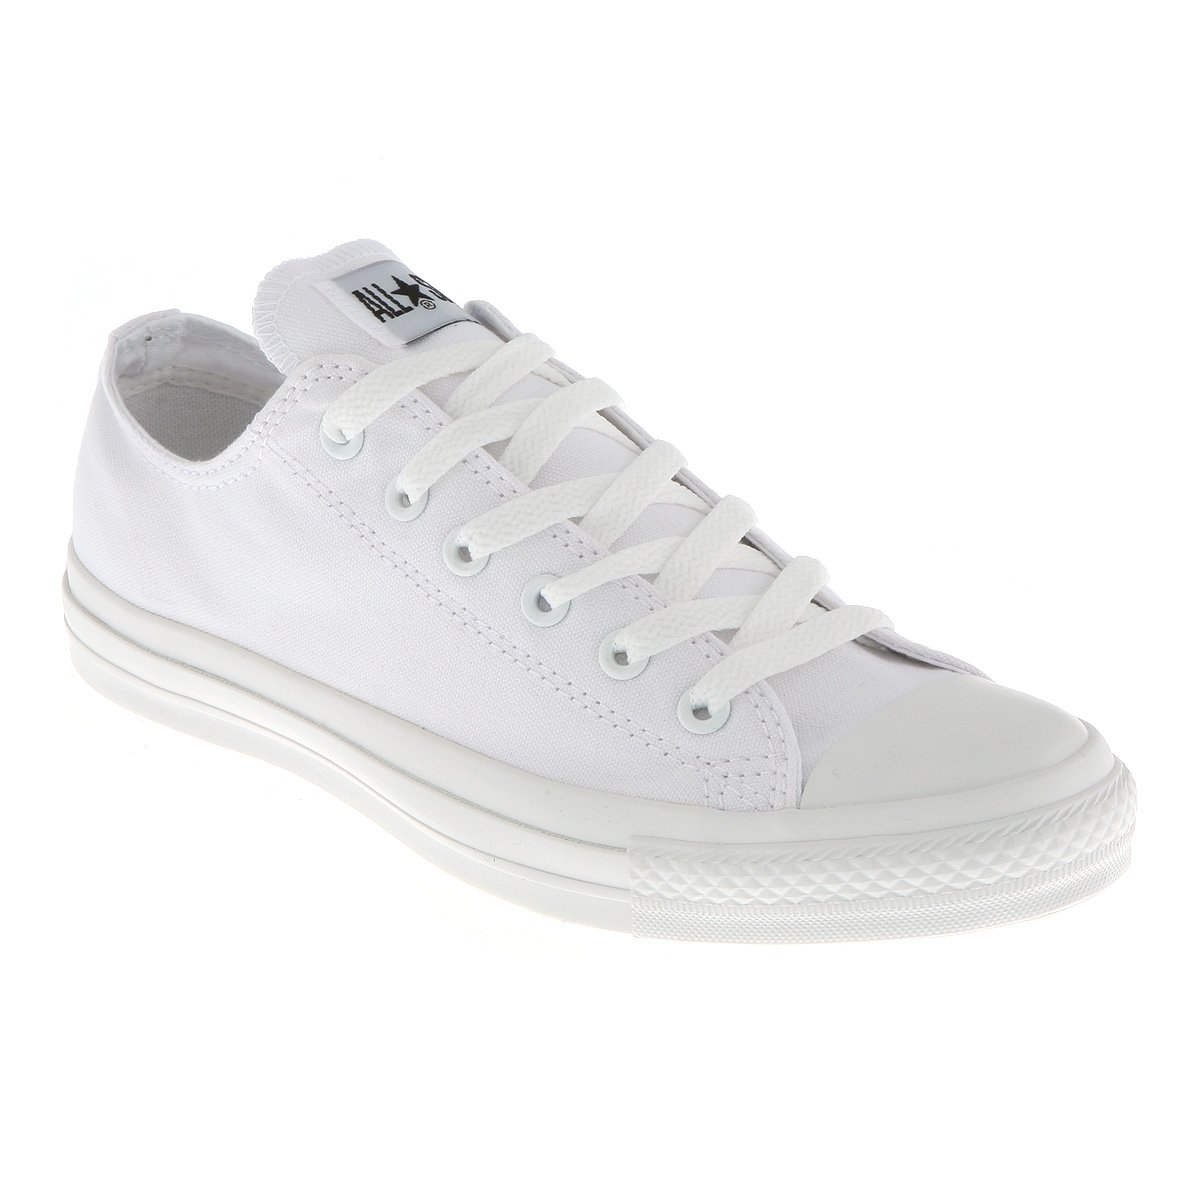 Converse All Star Ox Low White Mono Canvas Exclusive - 9.5 Uk